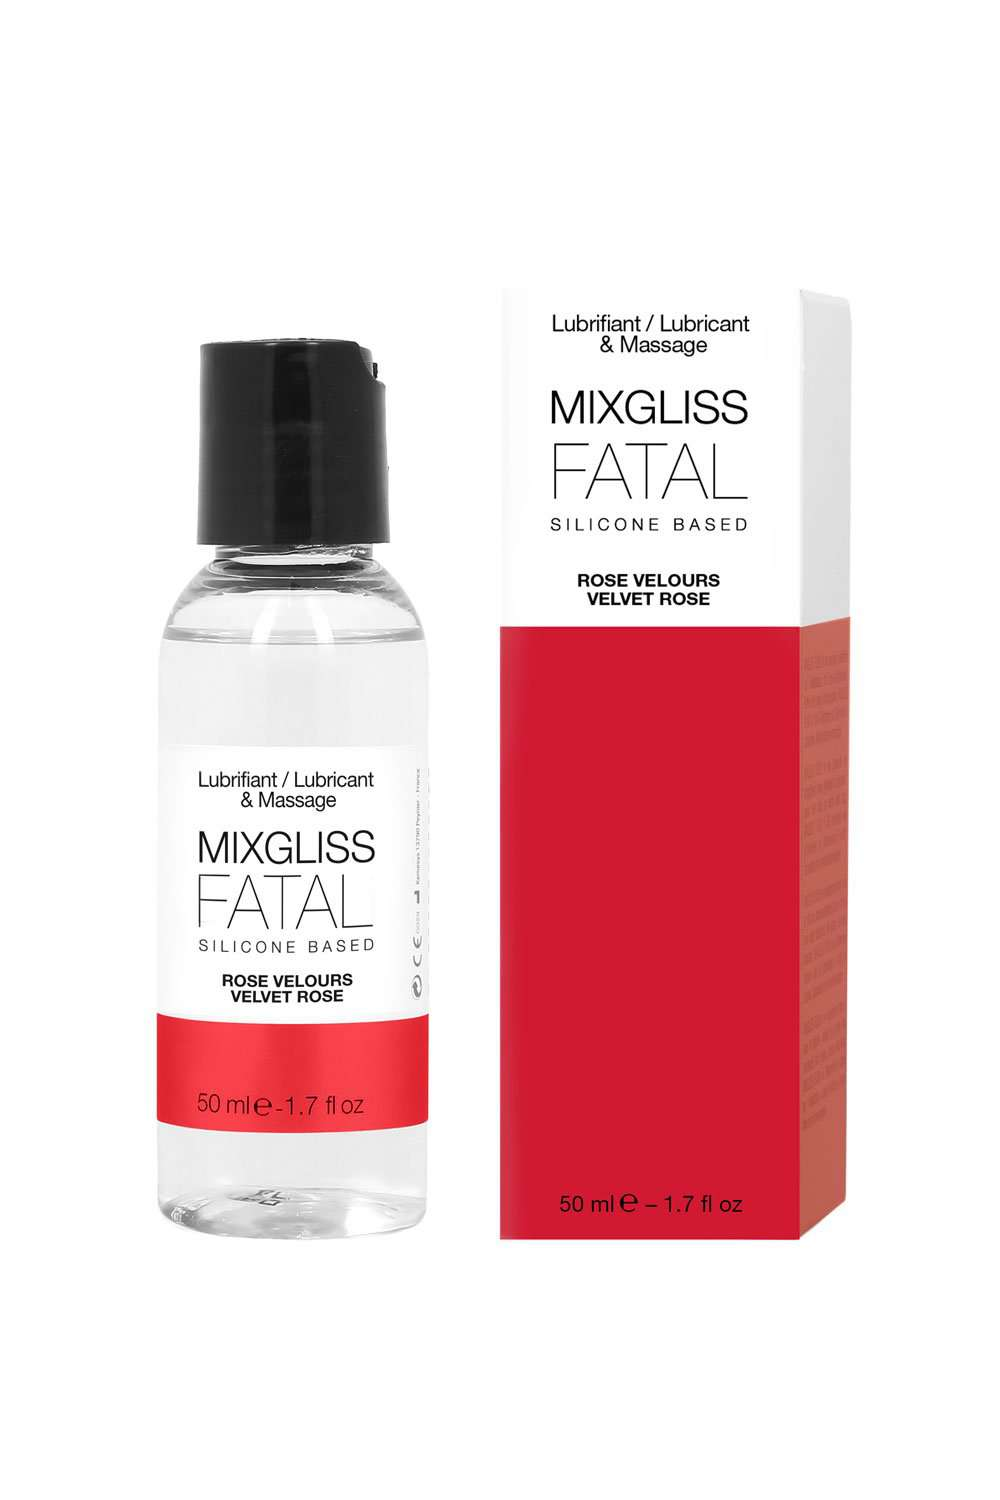 Mixgliss Velvet Rose Silicone-Based Lubricant & Massage Fluid